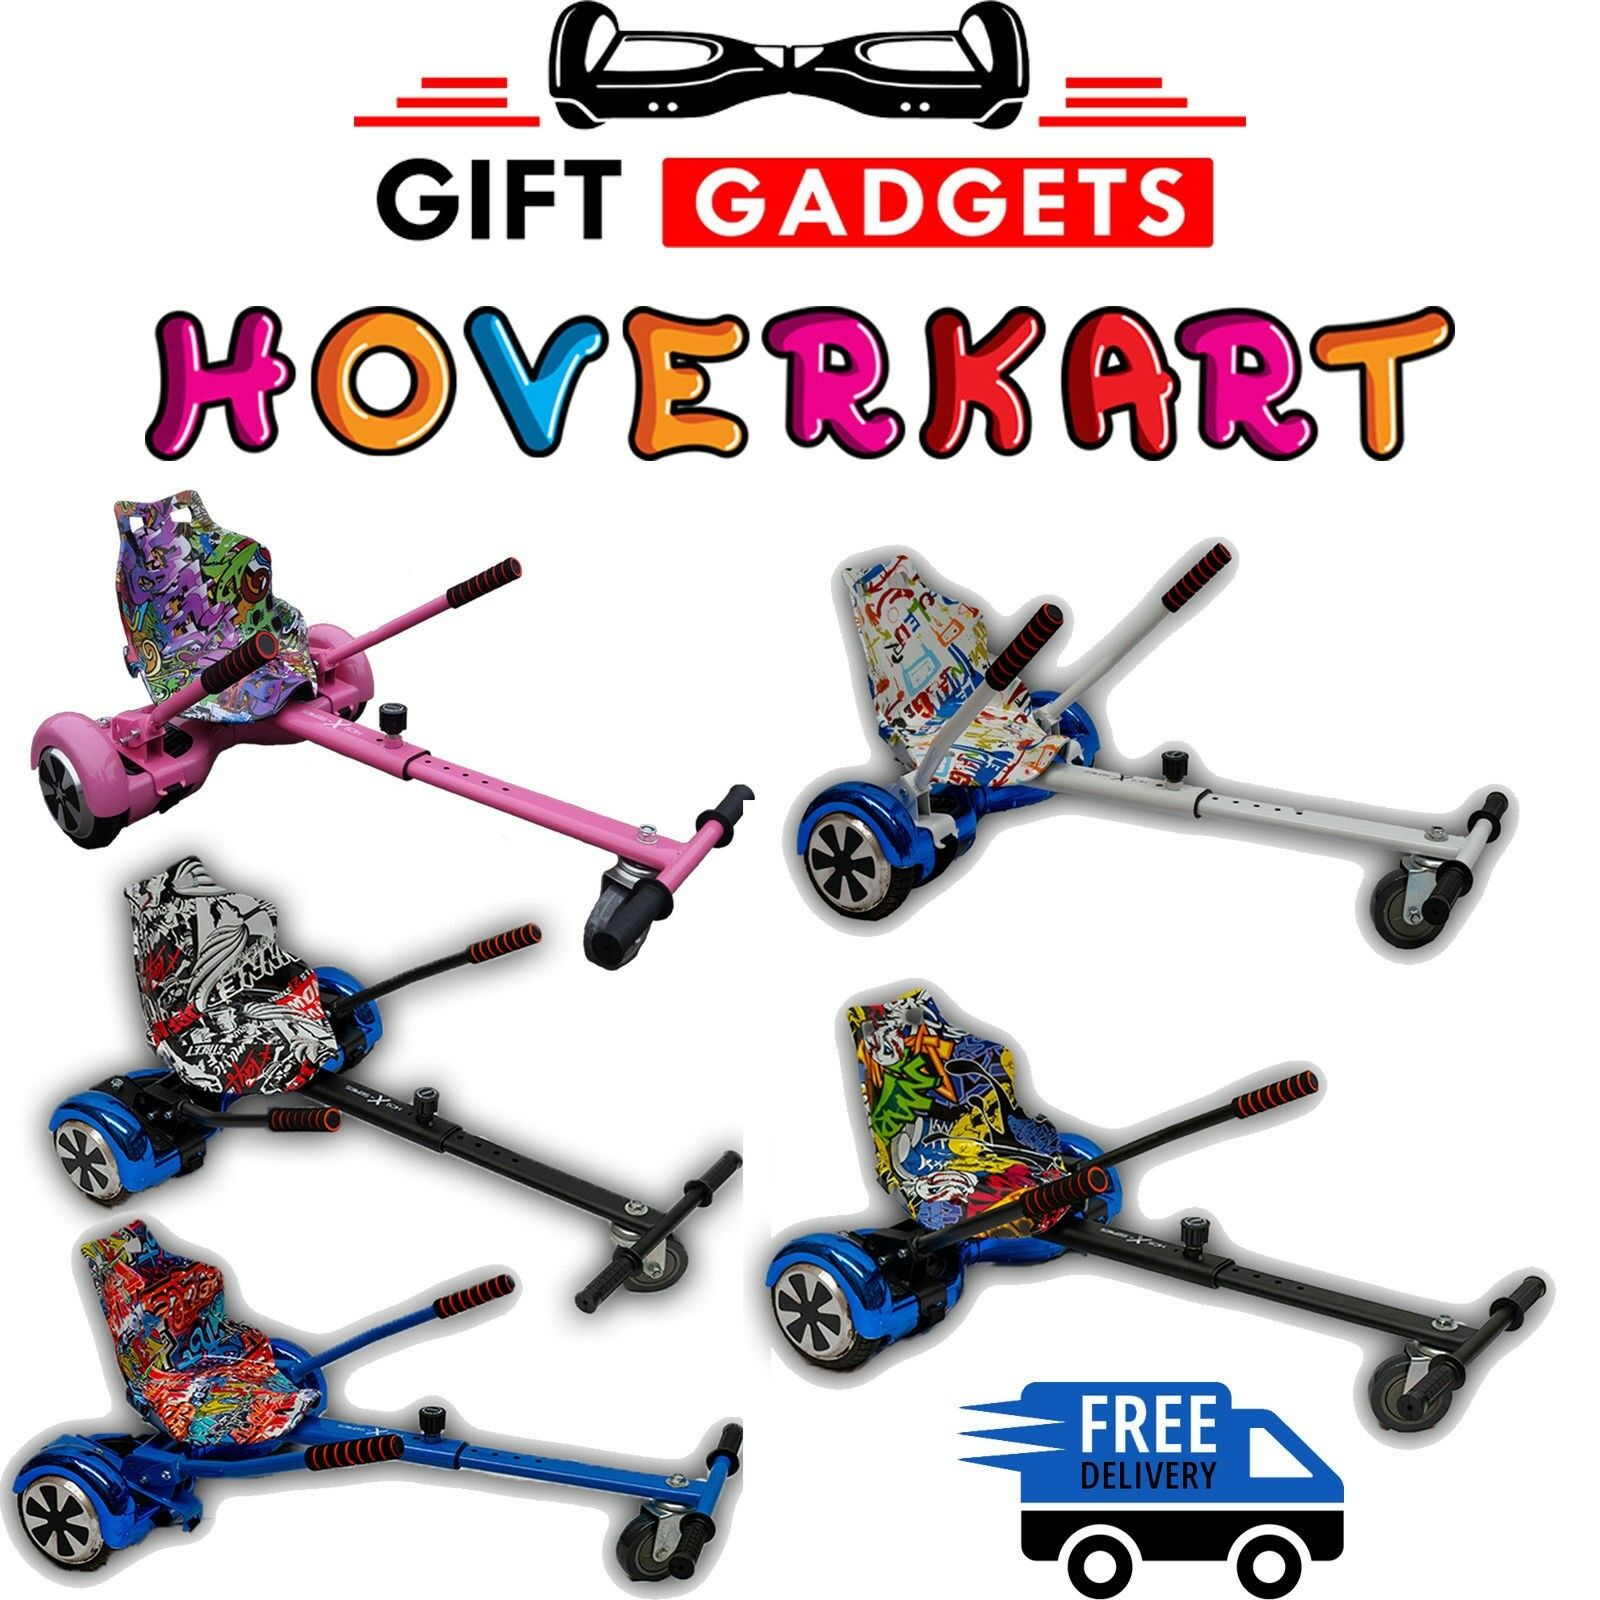 X2 Hover Cart For Kids Hoverkart Racer GoKart For Self Balance Board Scooter